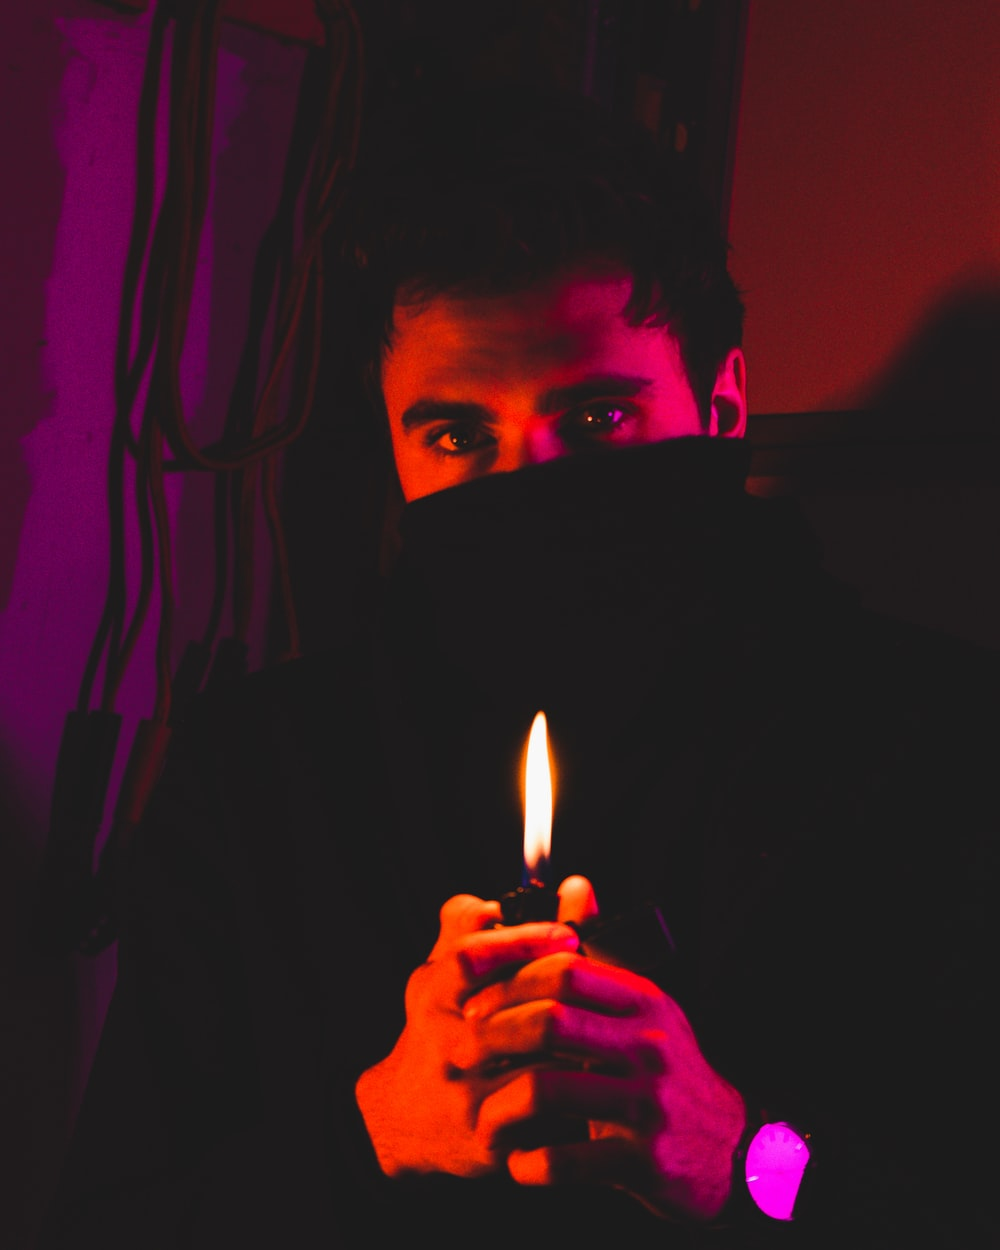 man in black hoodie holding lighted candle